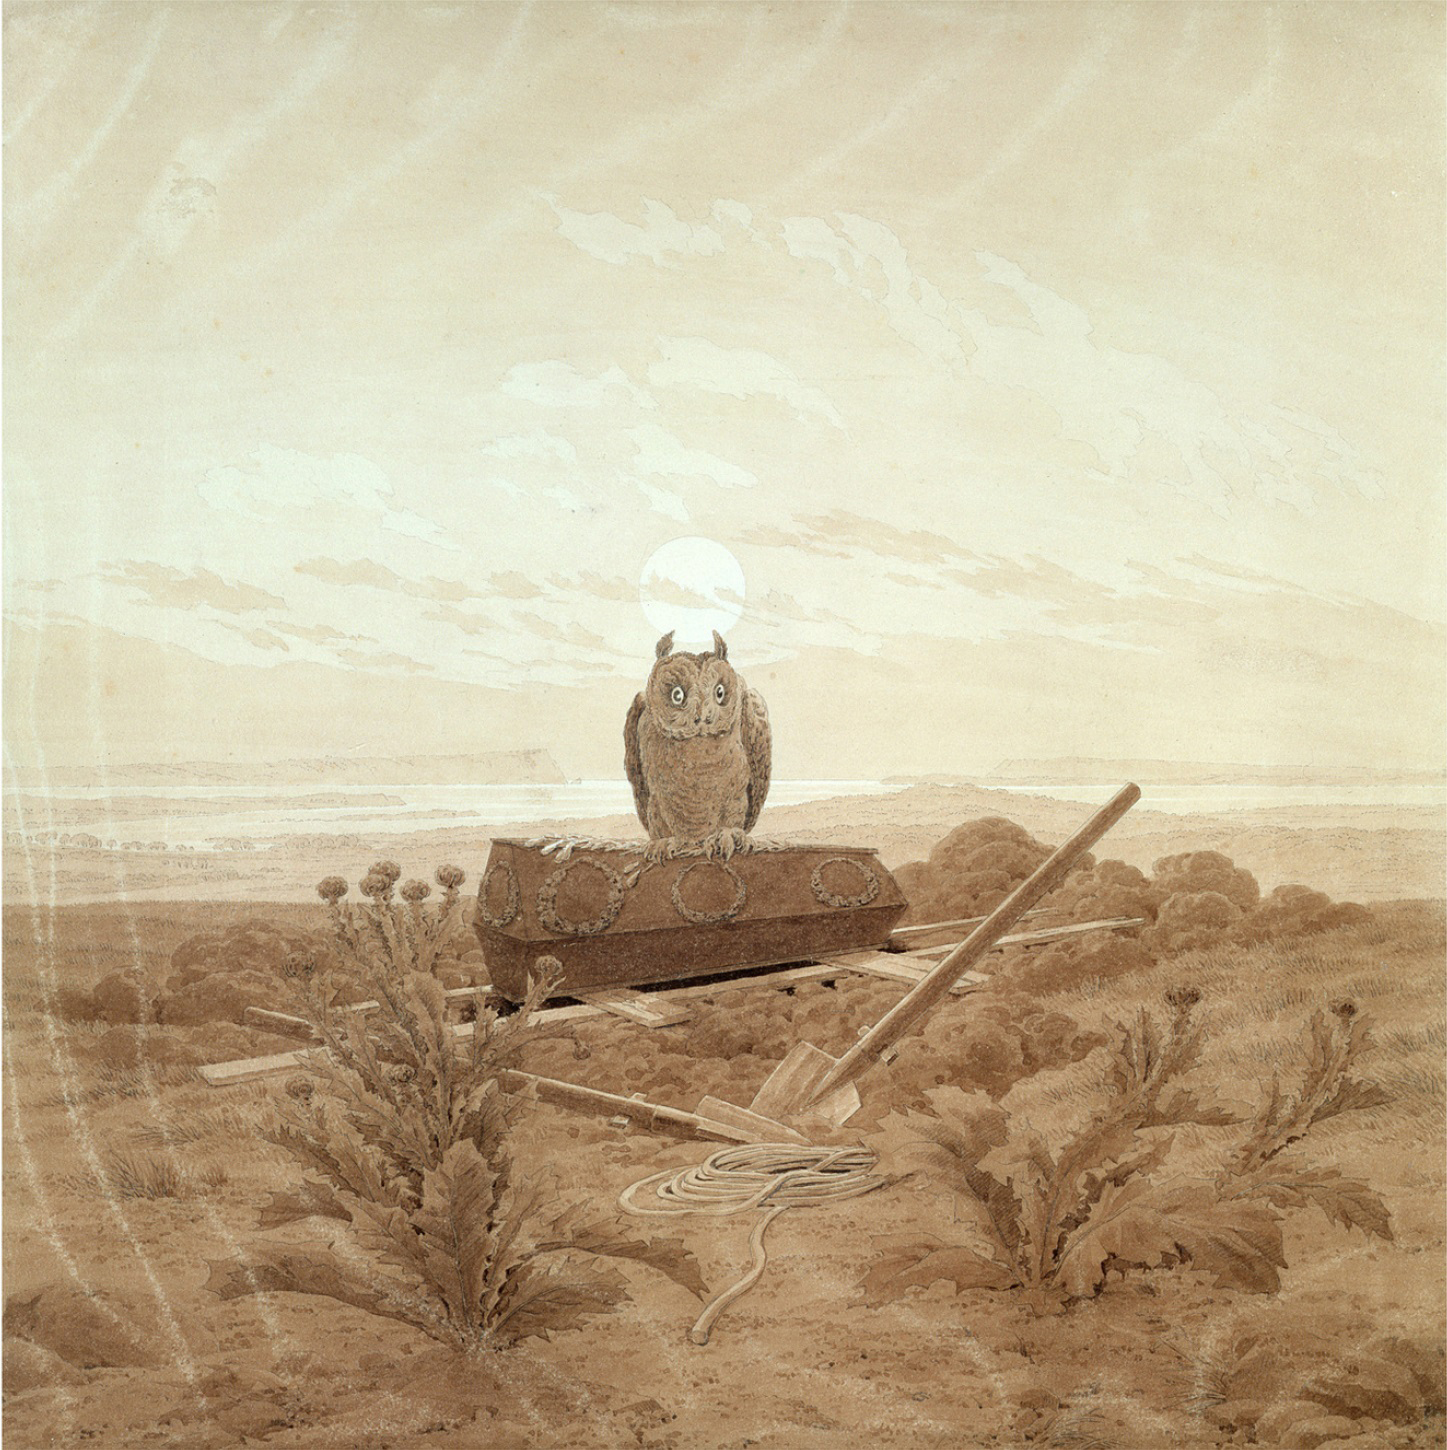 Landscape with Grave, Coffin and Owl (sepia ink and pencil on paper)